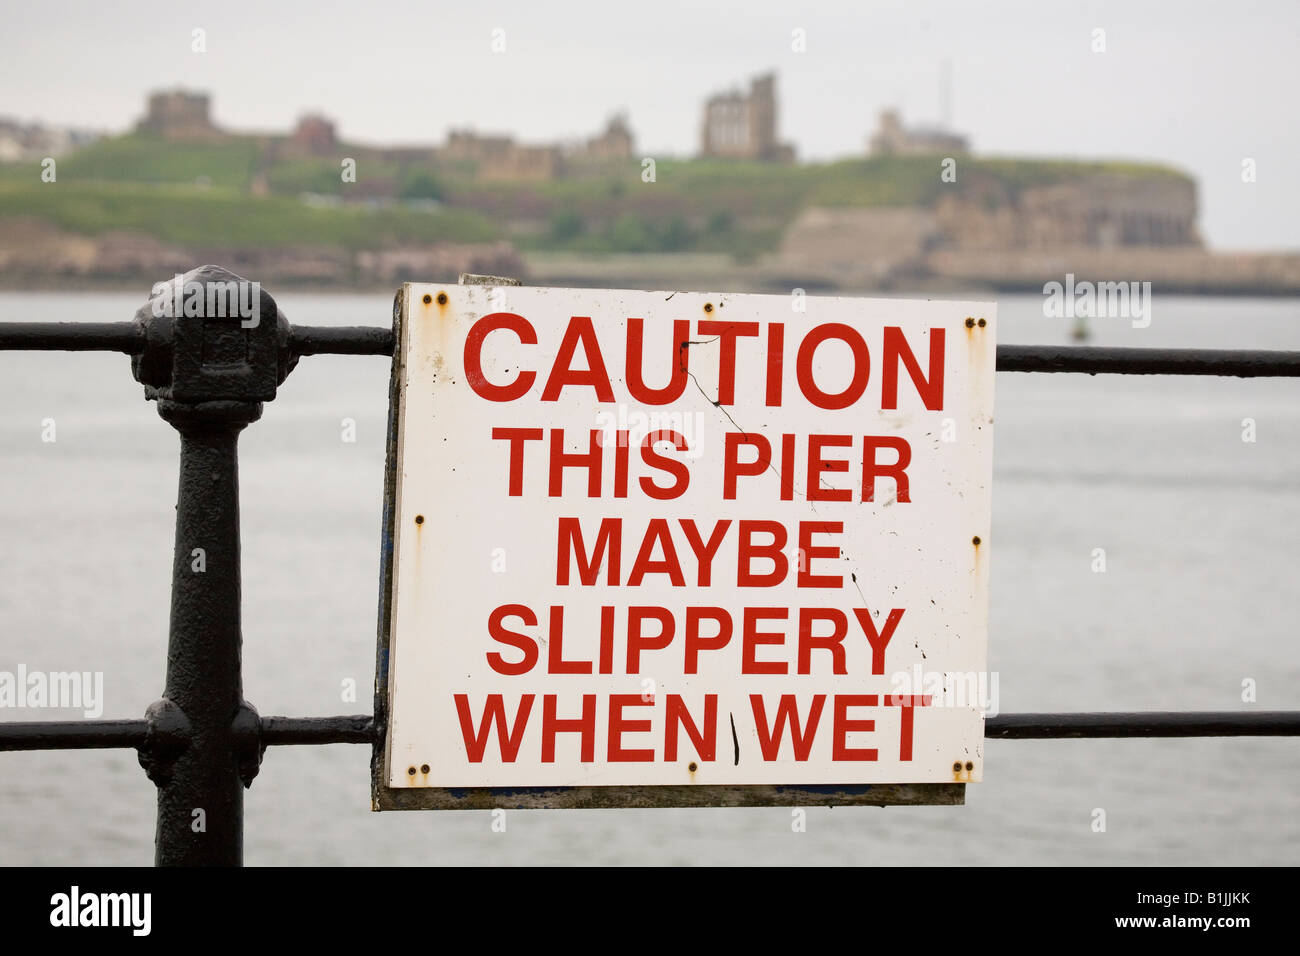 A sign warns that the pier may be slippery when wet in South Shields, England. - Stock Image